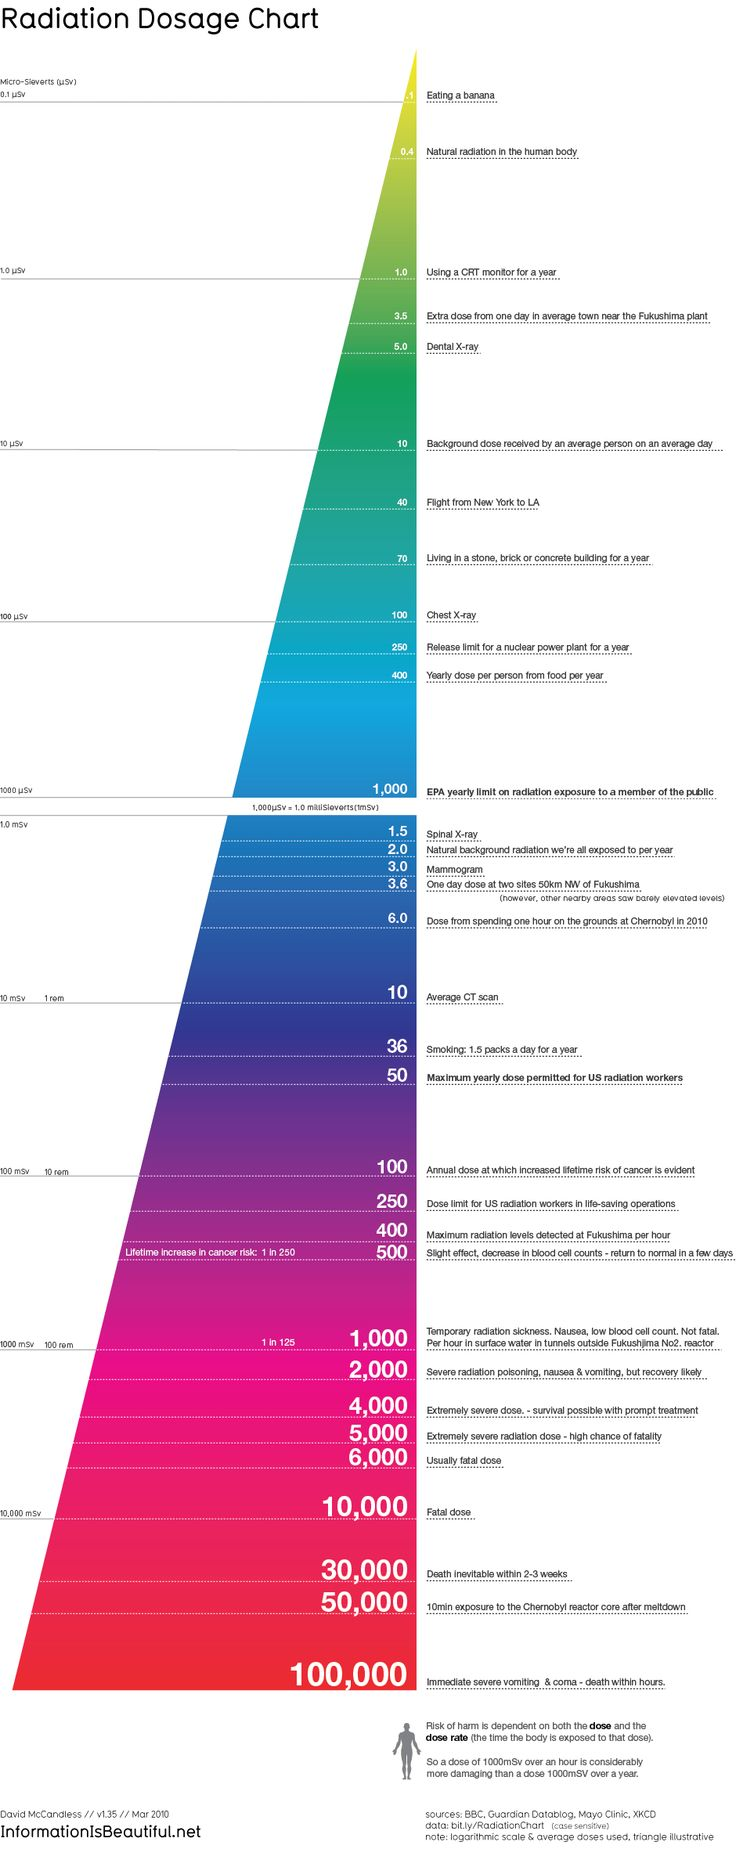 Teach someone about radiation exposure. Radiation Dosage Chart by David McCandless at Information is Beautiful / the progression from tiny bits of safe radiation to more dangerous levels. (view it large through the link to fully examine)